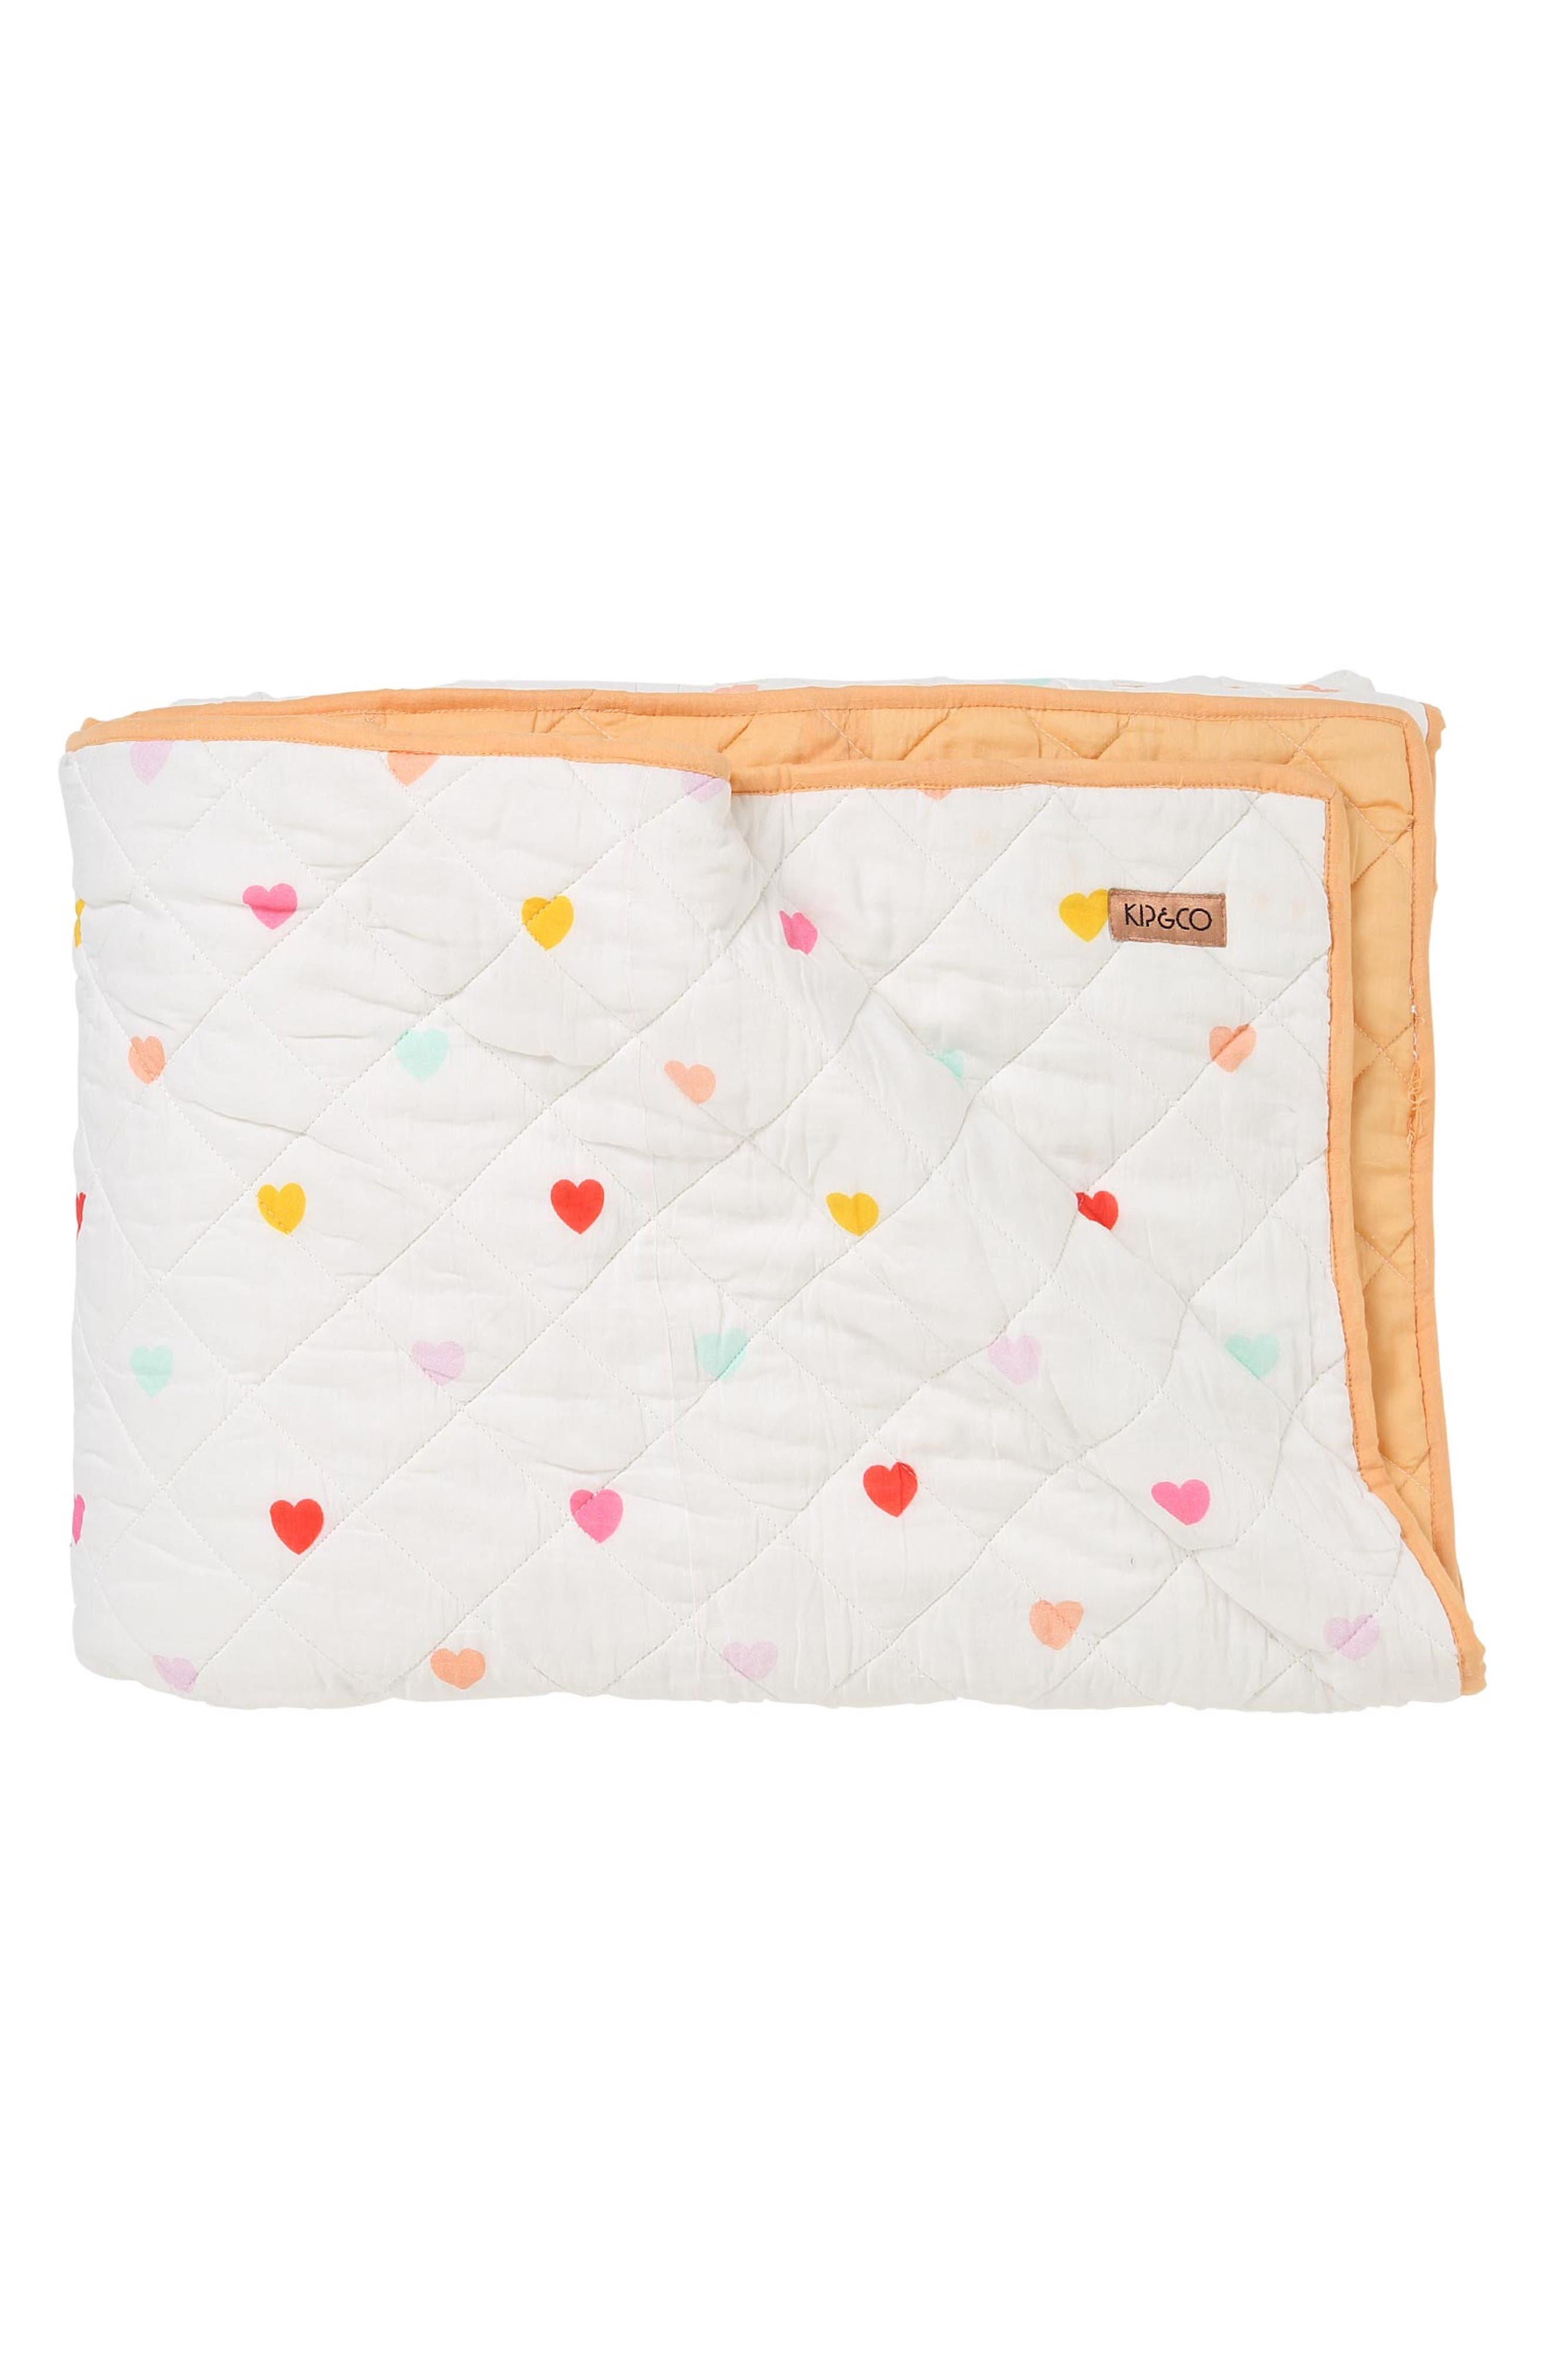 I Heart You Quilted Cotton Comforter,                         Main,                         color, MULTI